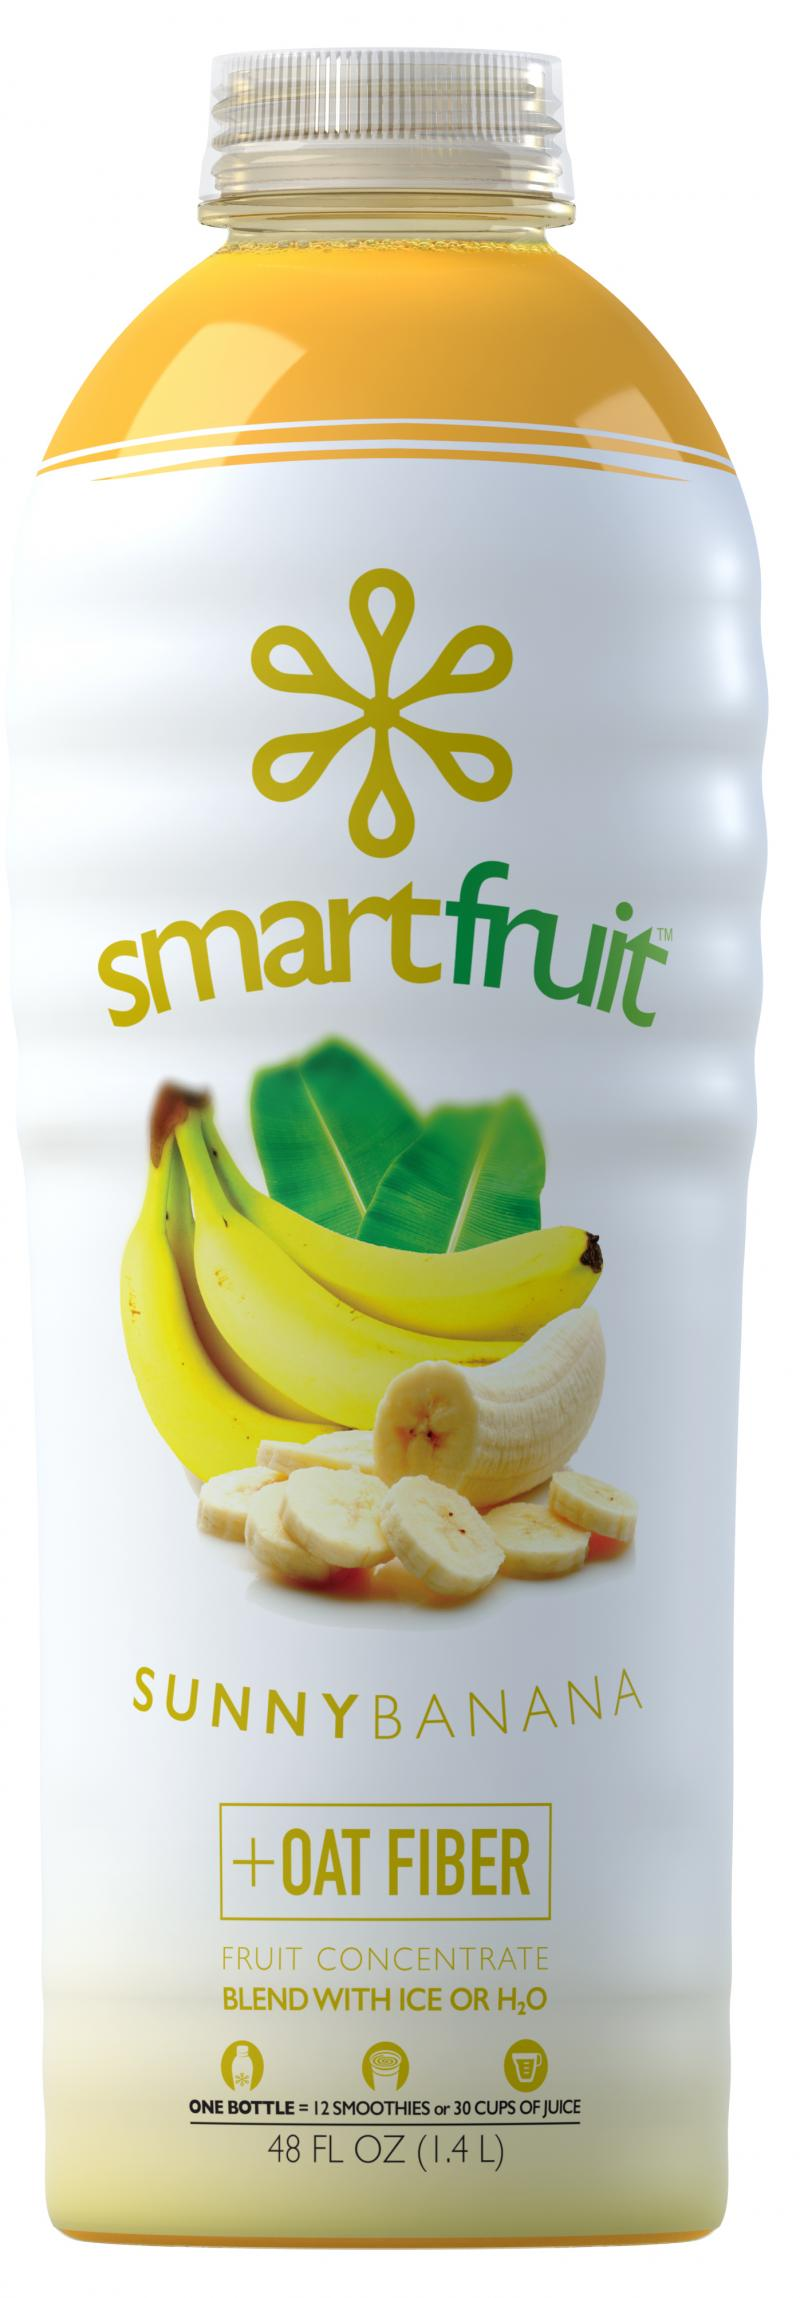 Sunny Banana + Oat Fiber Juice From Concentrate